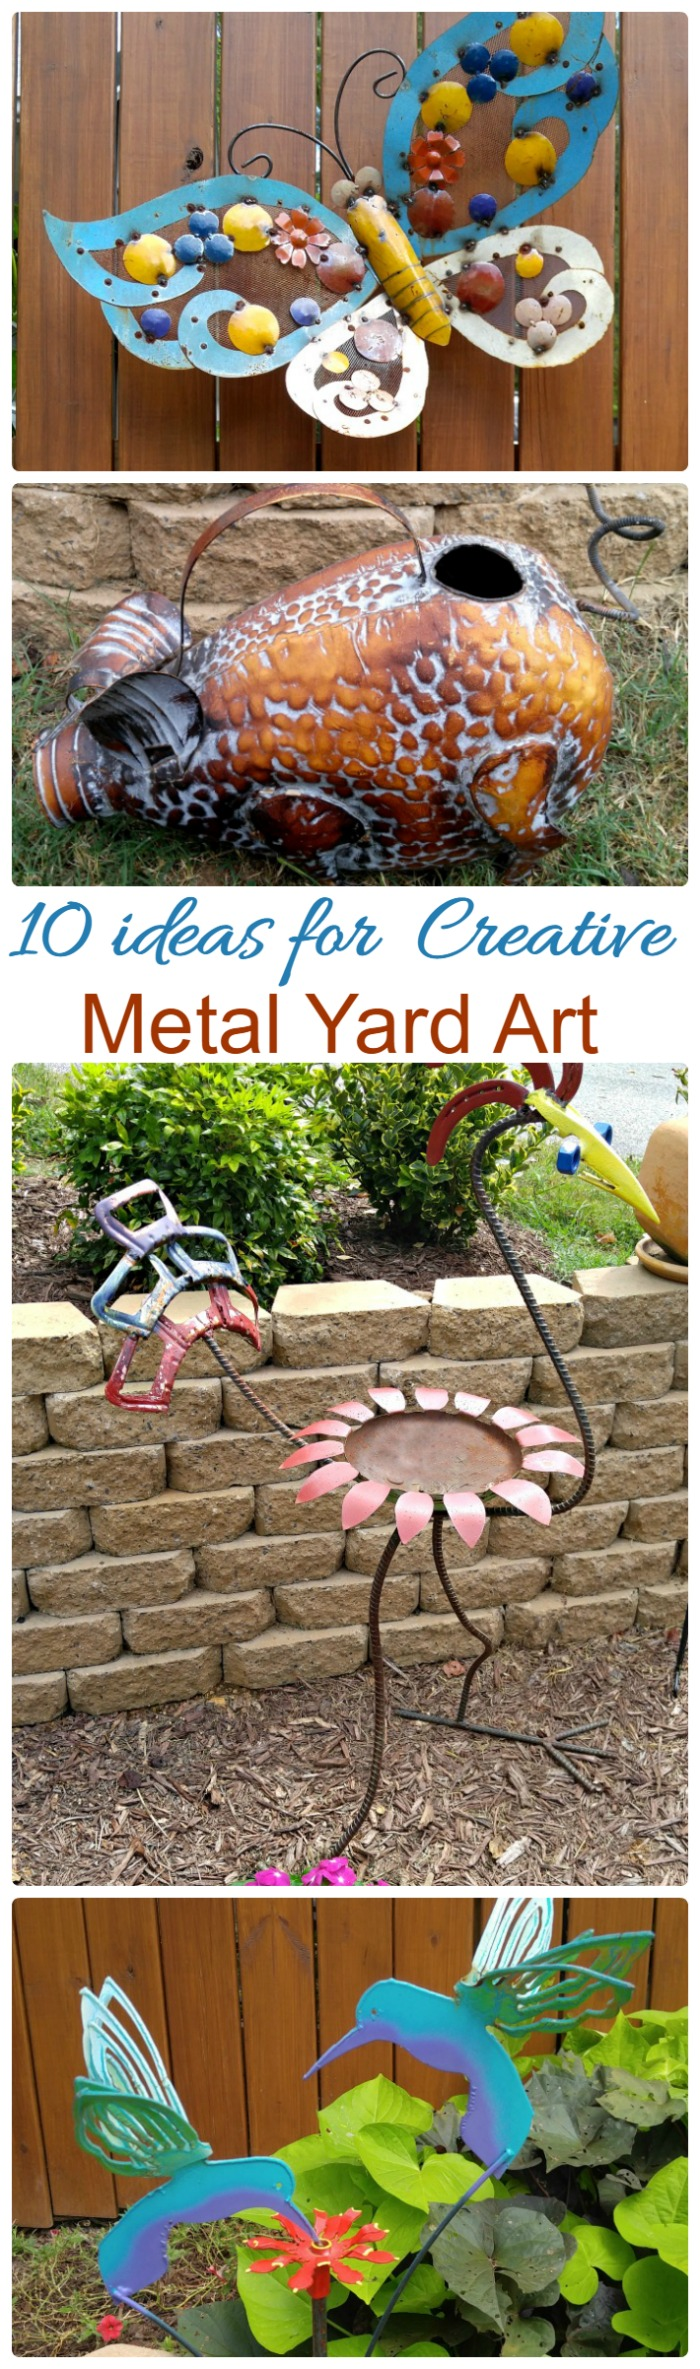 Creative metal yard art adds a whimsical touch to any garden setting. These 10 ideas will give you some inspiration for your garden.